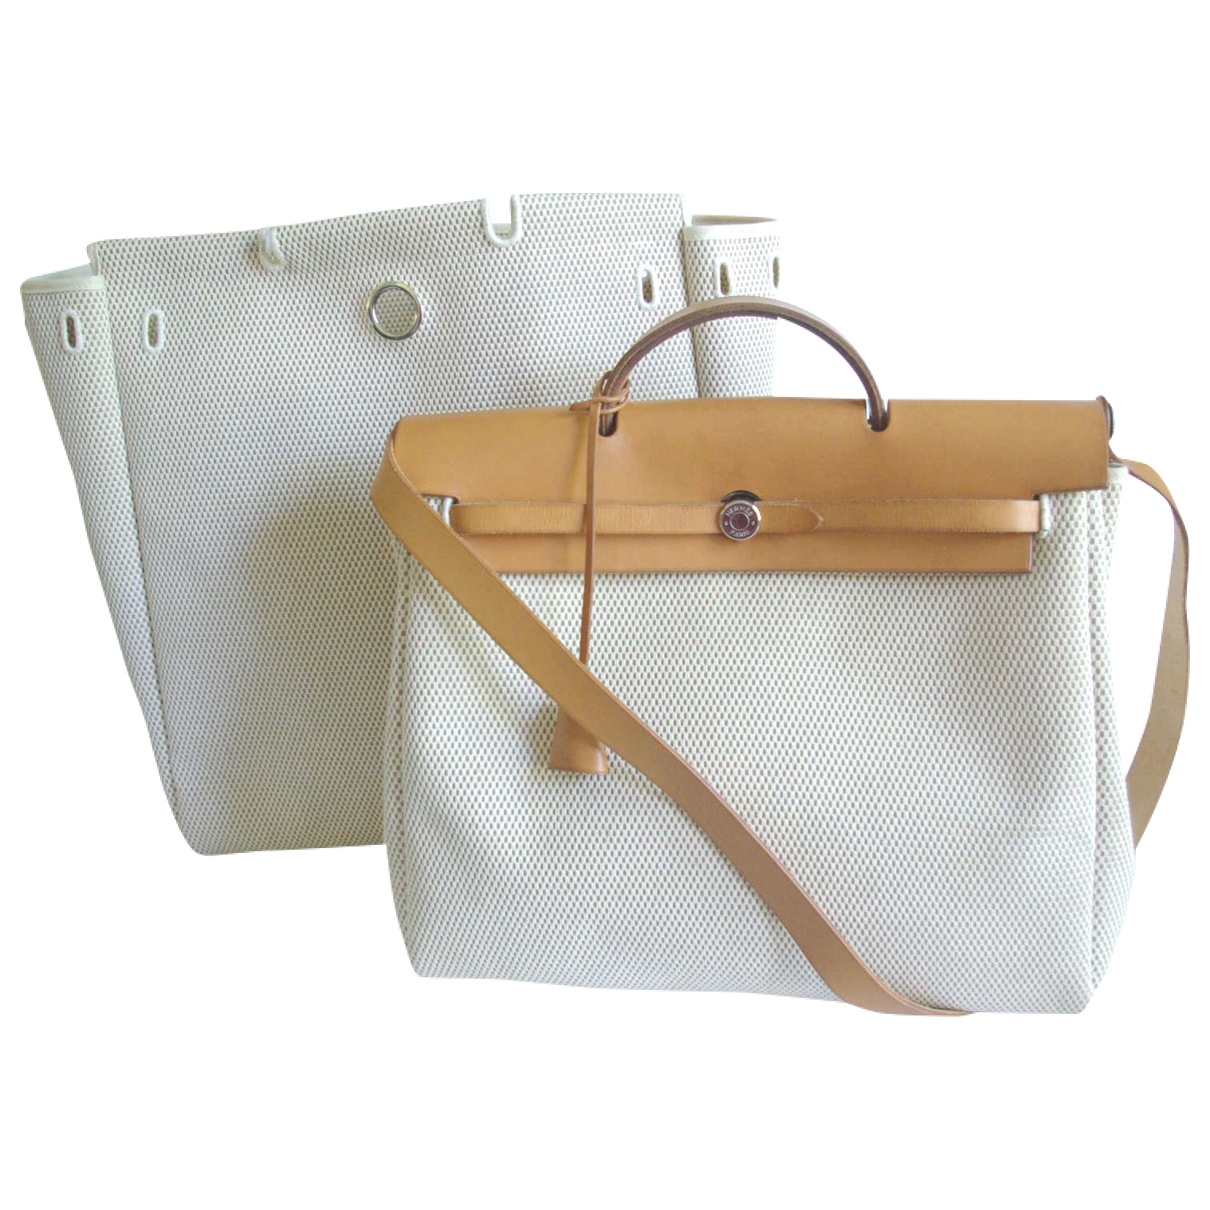 Hermès Herbag Beige Cloth handbag for Women \N